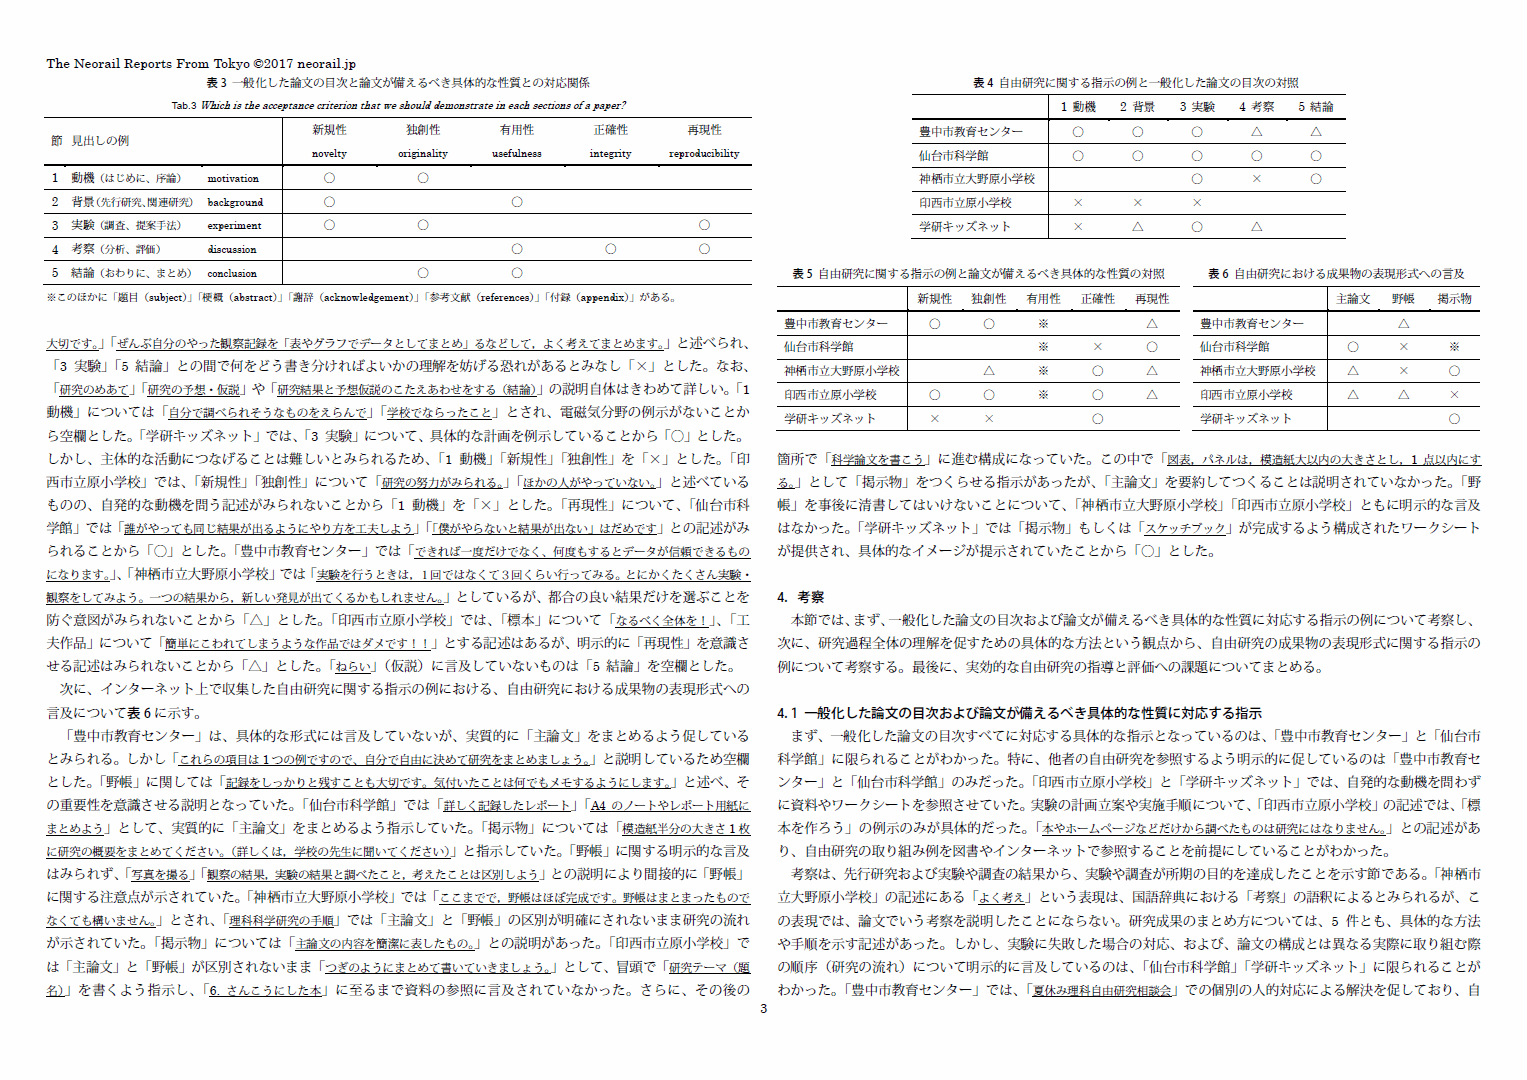 https://neorail.jp/reports/20170128_A_Survey_of_Recent_JIYUU-KENKYU_in_Japan/preview_page3.png